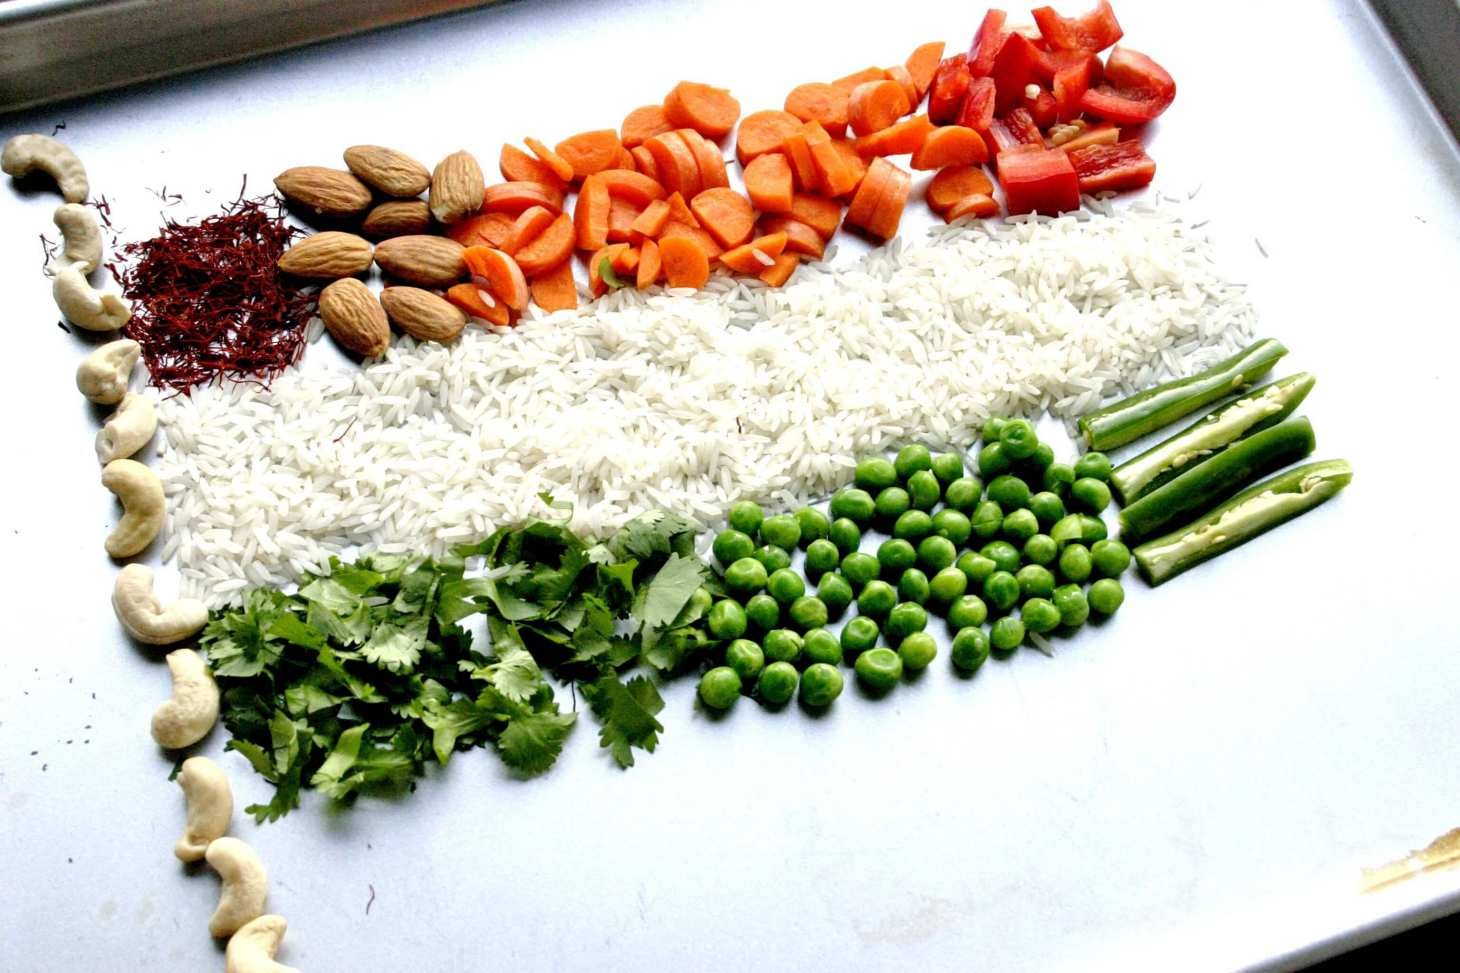 republic day india flag decorated by multi vegetables The Ultimate List: 50+ Ideas for India Republic Day Celebration